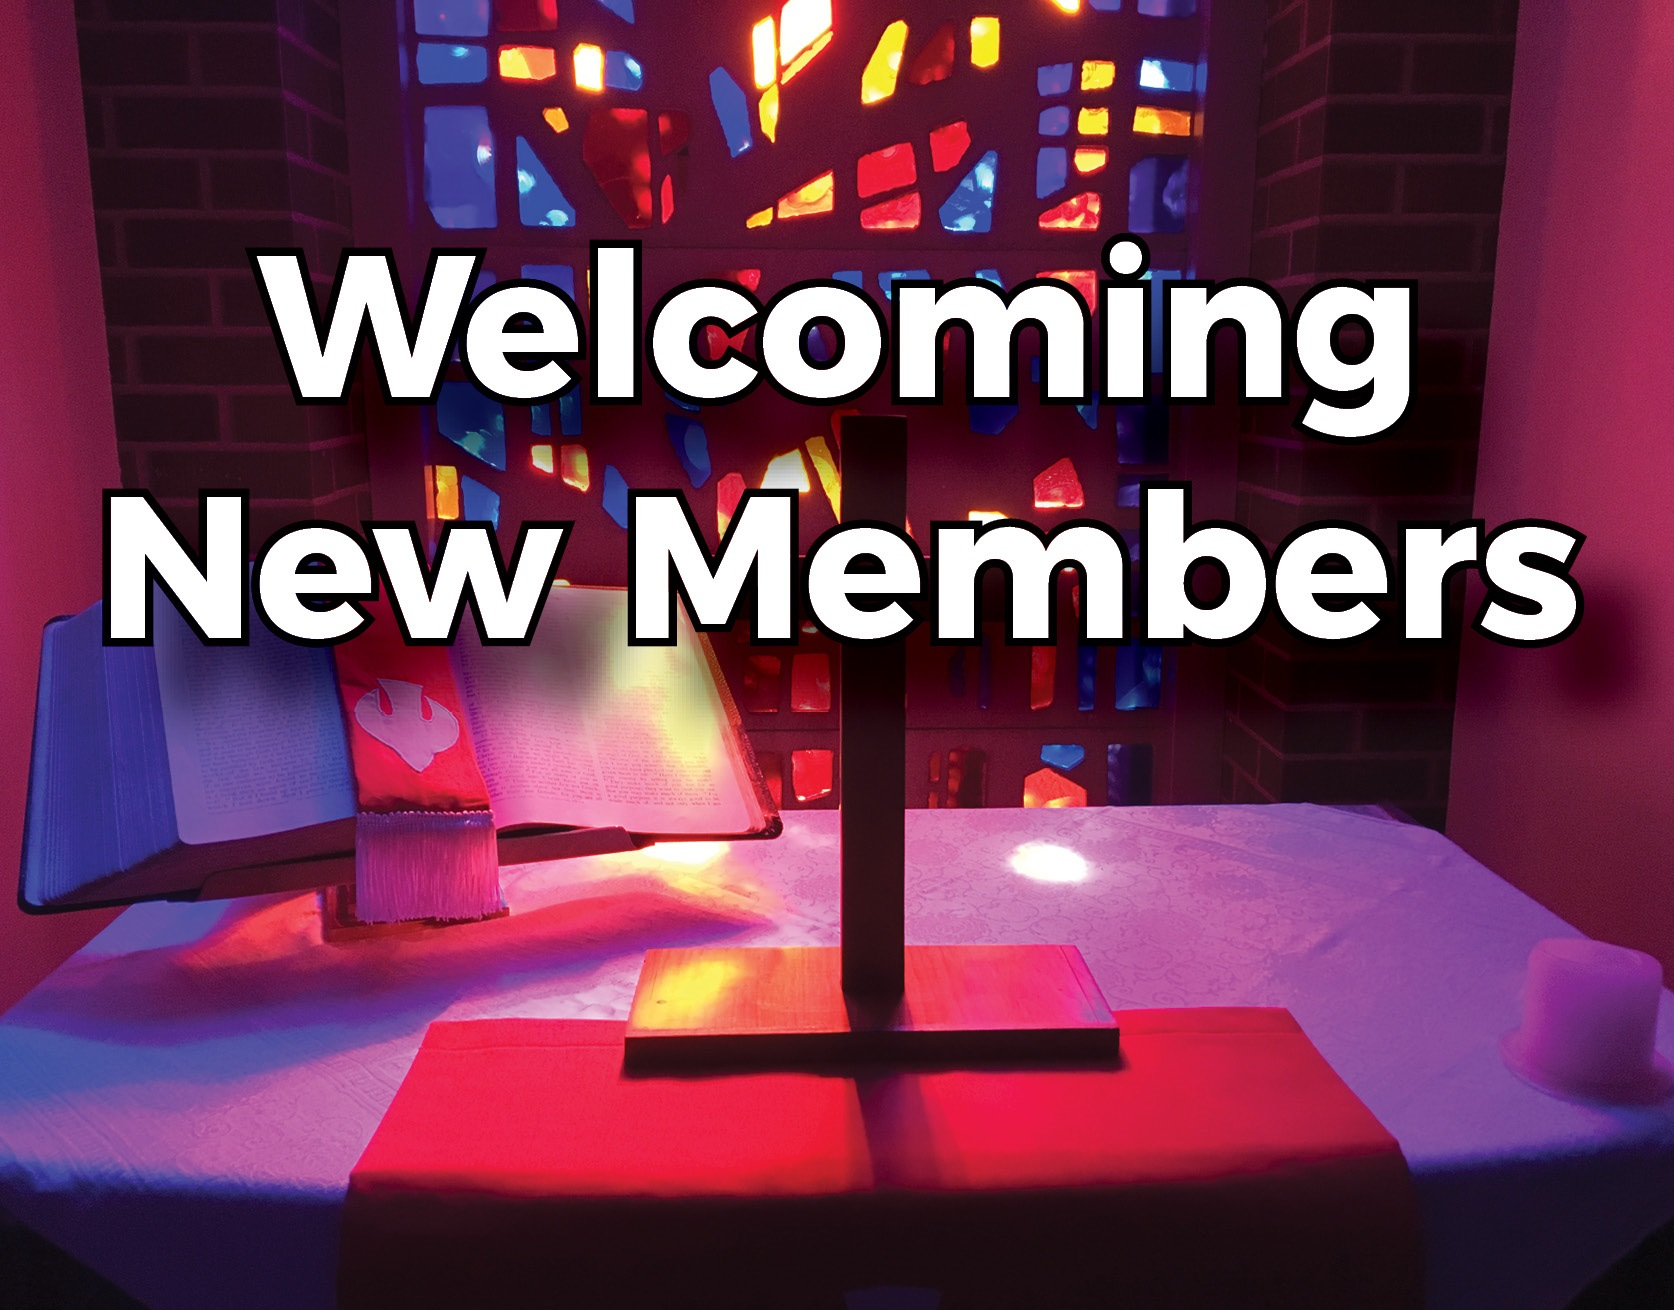 Welcoming New Members